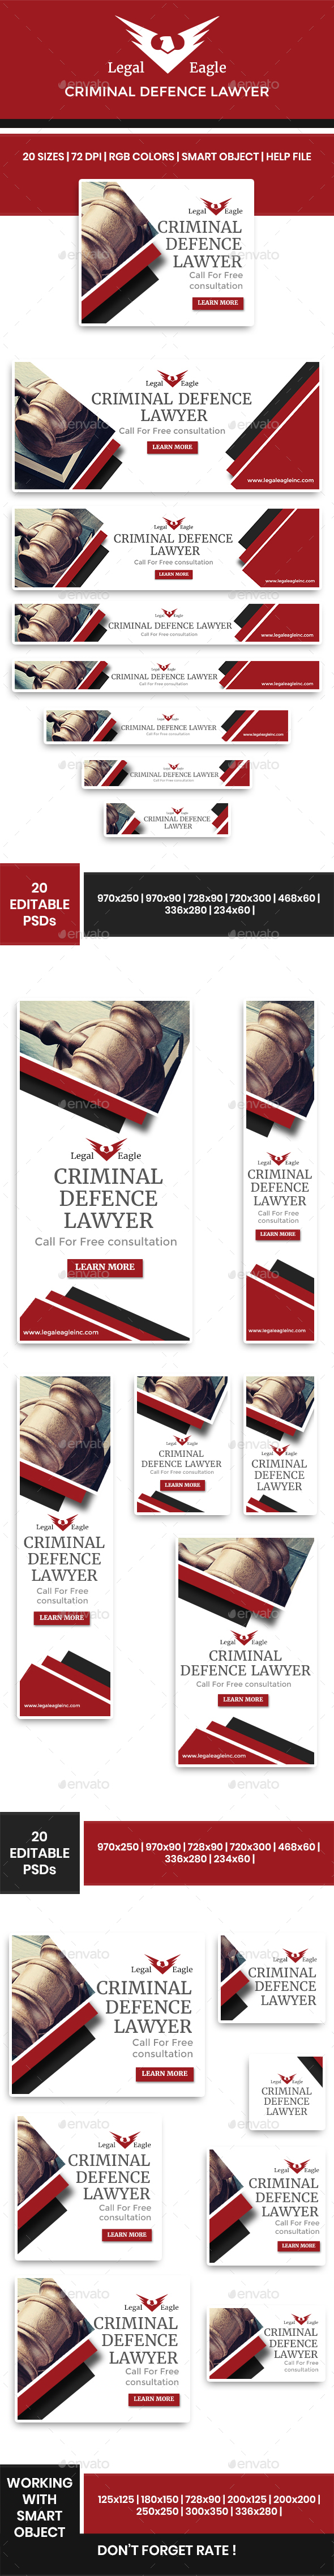 Legal Eagle: Criminal Defence Lawyer Web Banners - Banners & Ads Web Elements